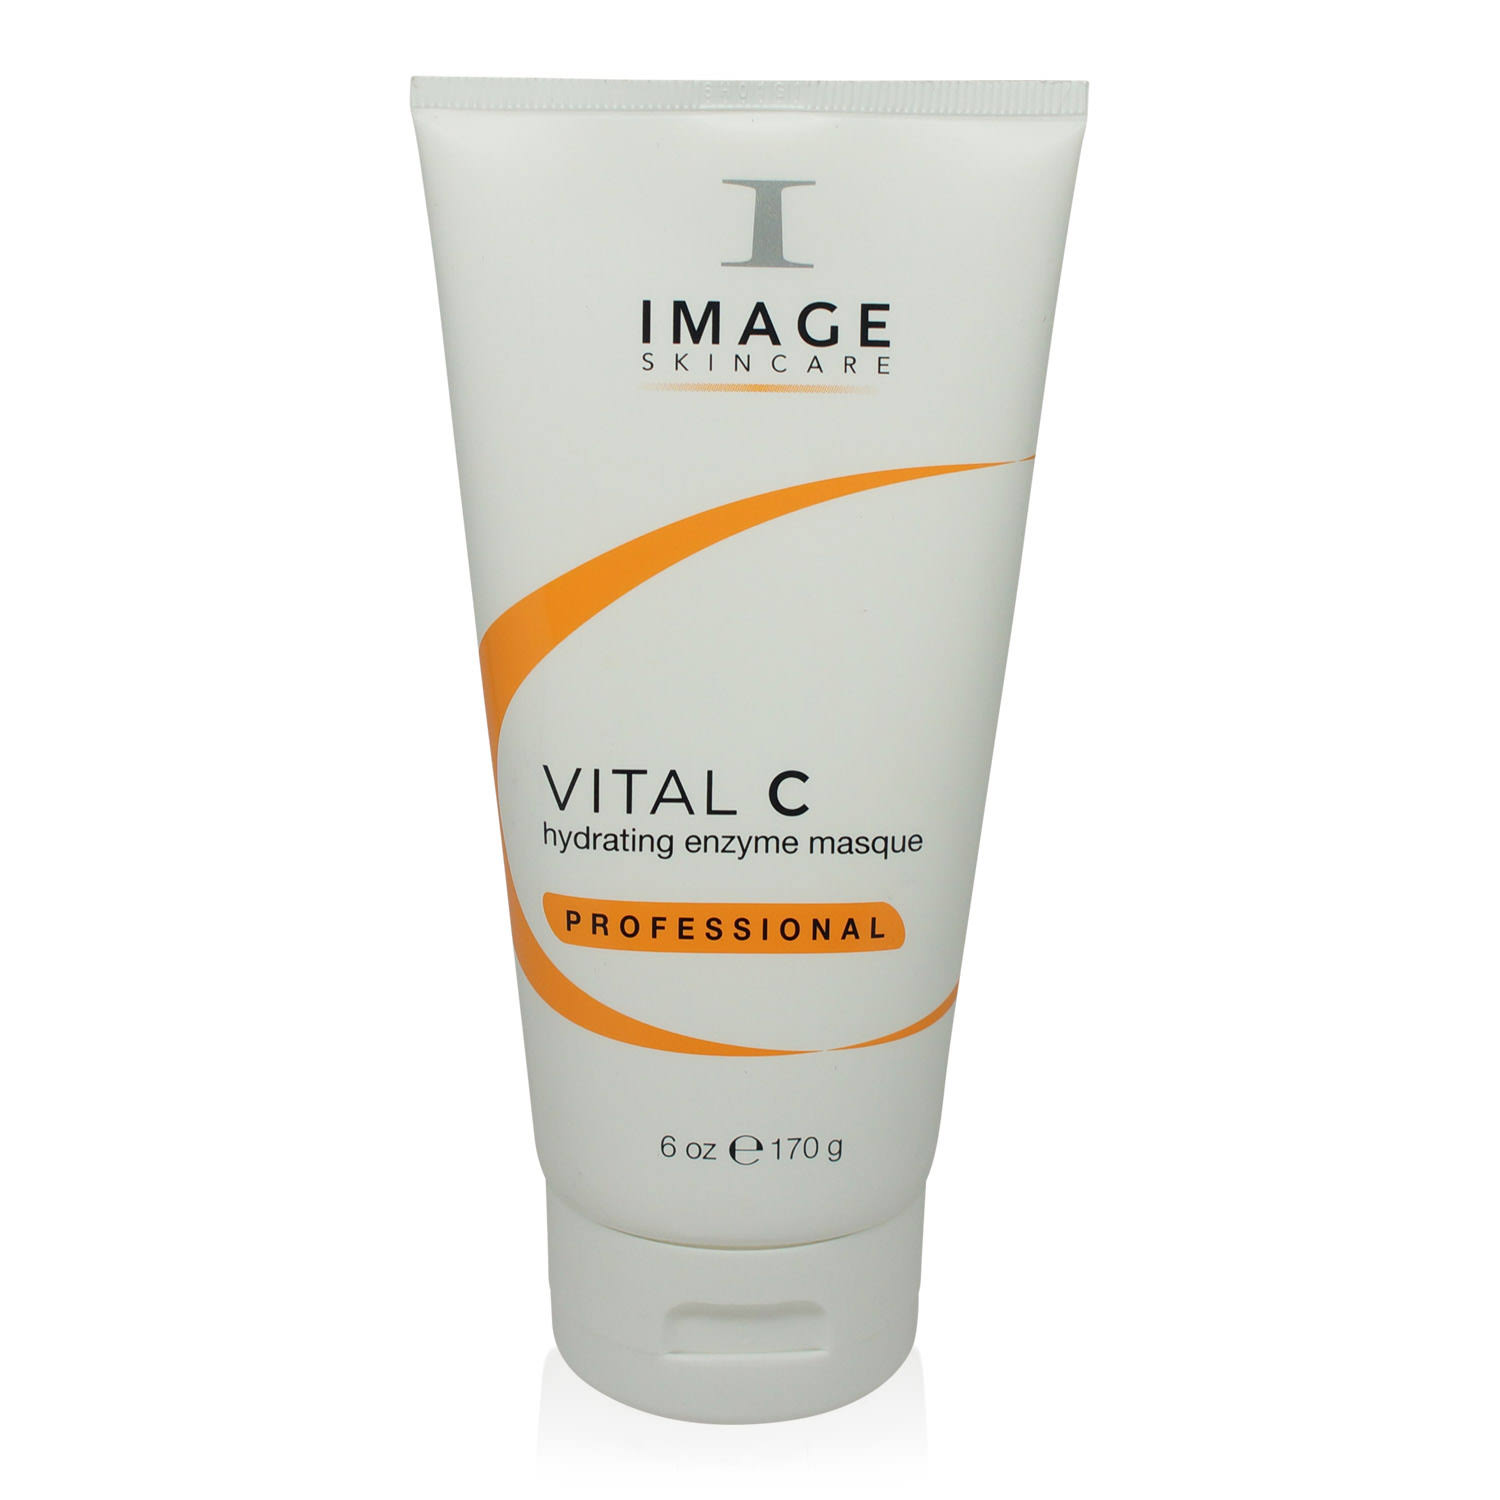 Image Skincare Vital C Hydrating Enzyme Facial Masque - 6oz